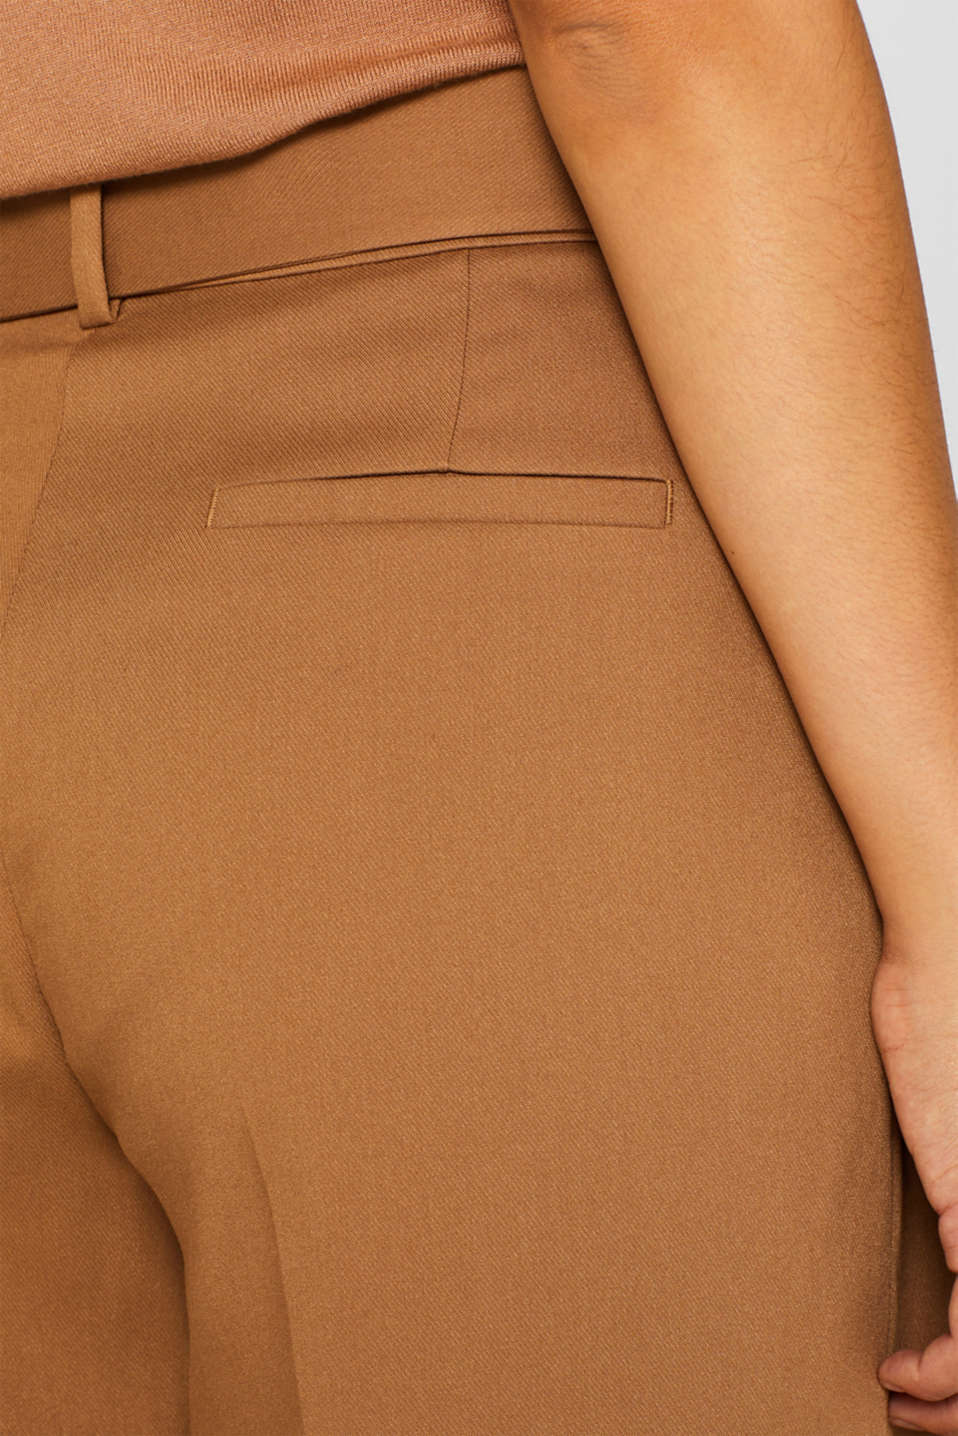 Pants woven, CAMEL, detail image number 5